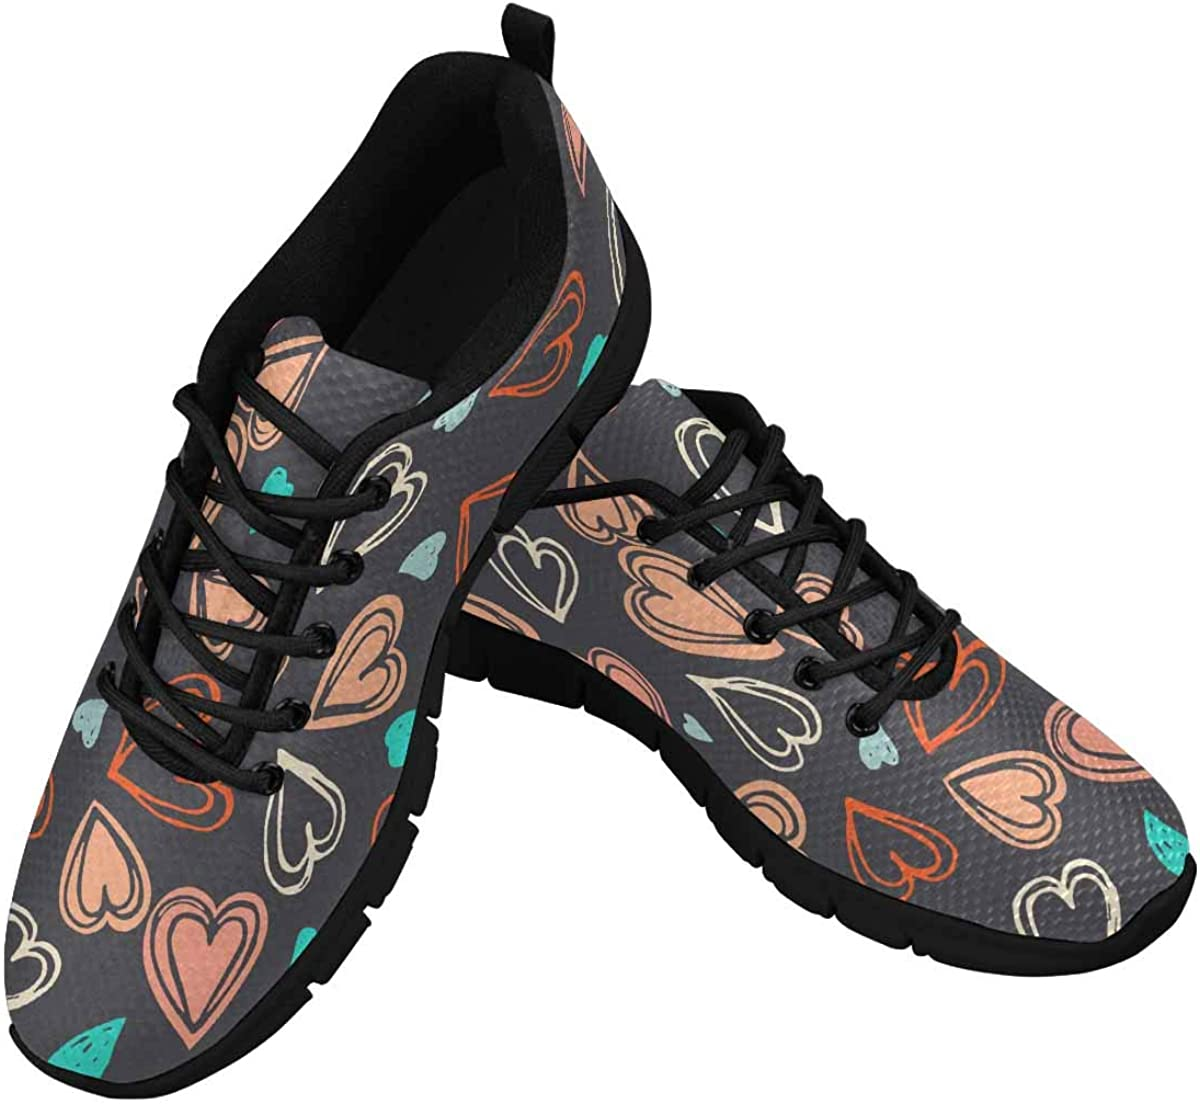 InterestPrint Cute Colorful Hearts Women's Running Shoes Mesh Breathable Sports Casual Shoes